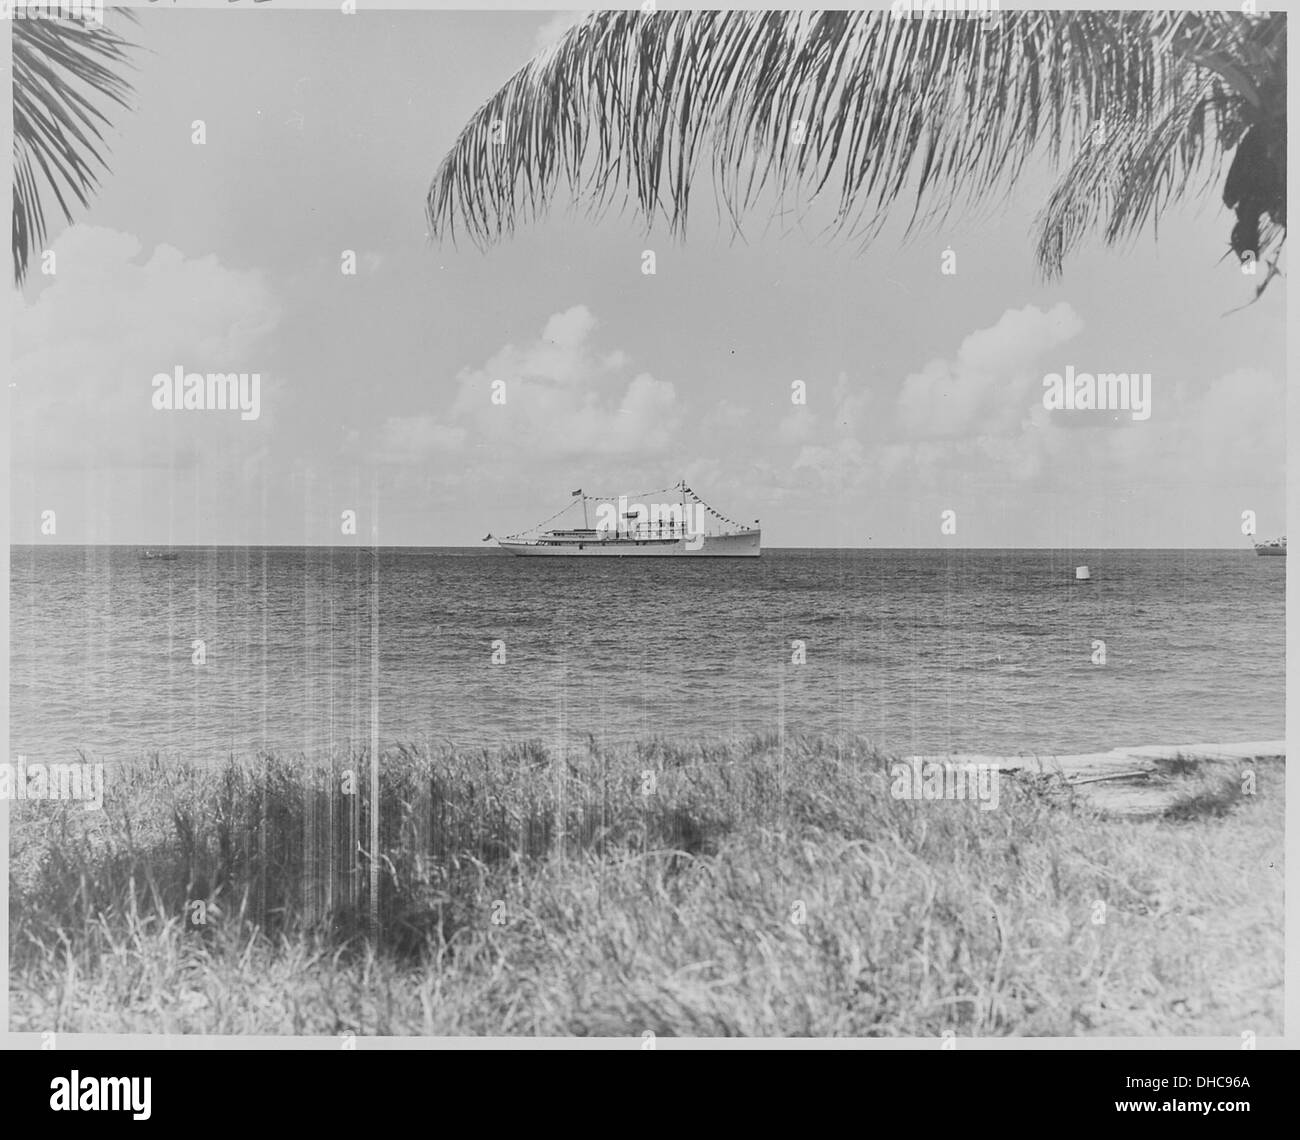 Photograph of President Truman's yacht, the U.S.S. WILLIAMSBURG, anchored at Frederiksted Harbor, St. Croix, Virgin... 200474 - Stock Image